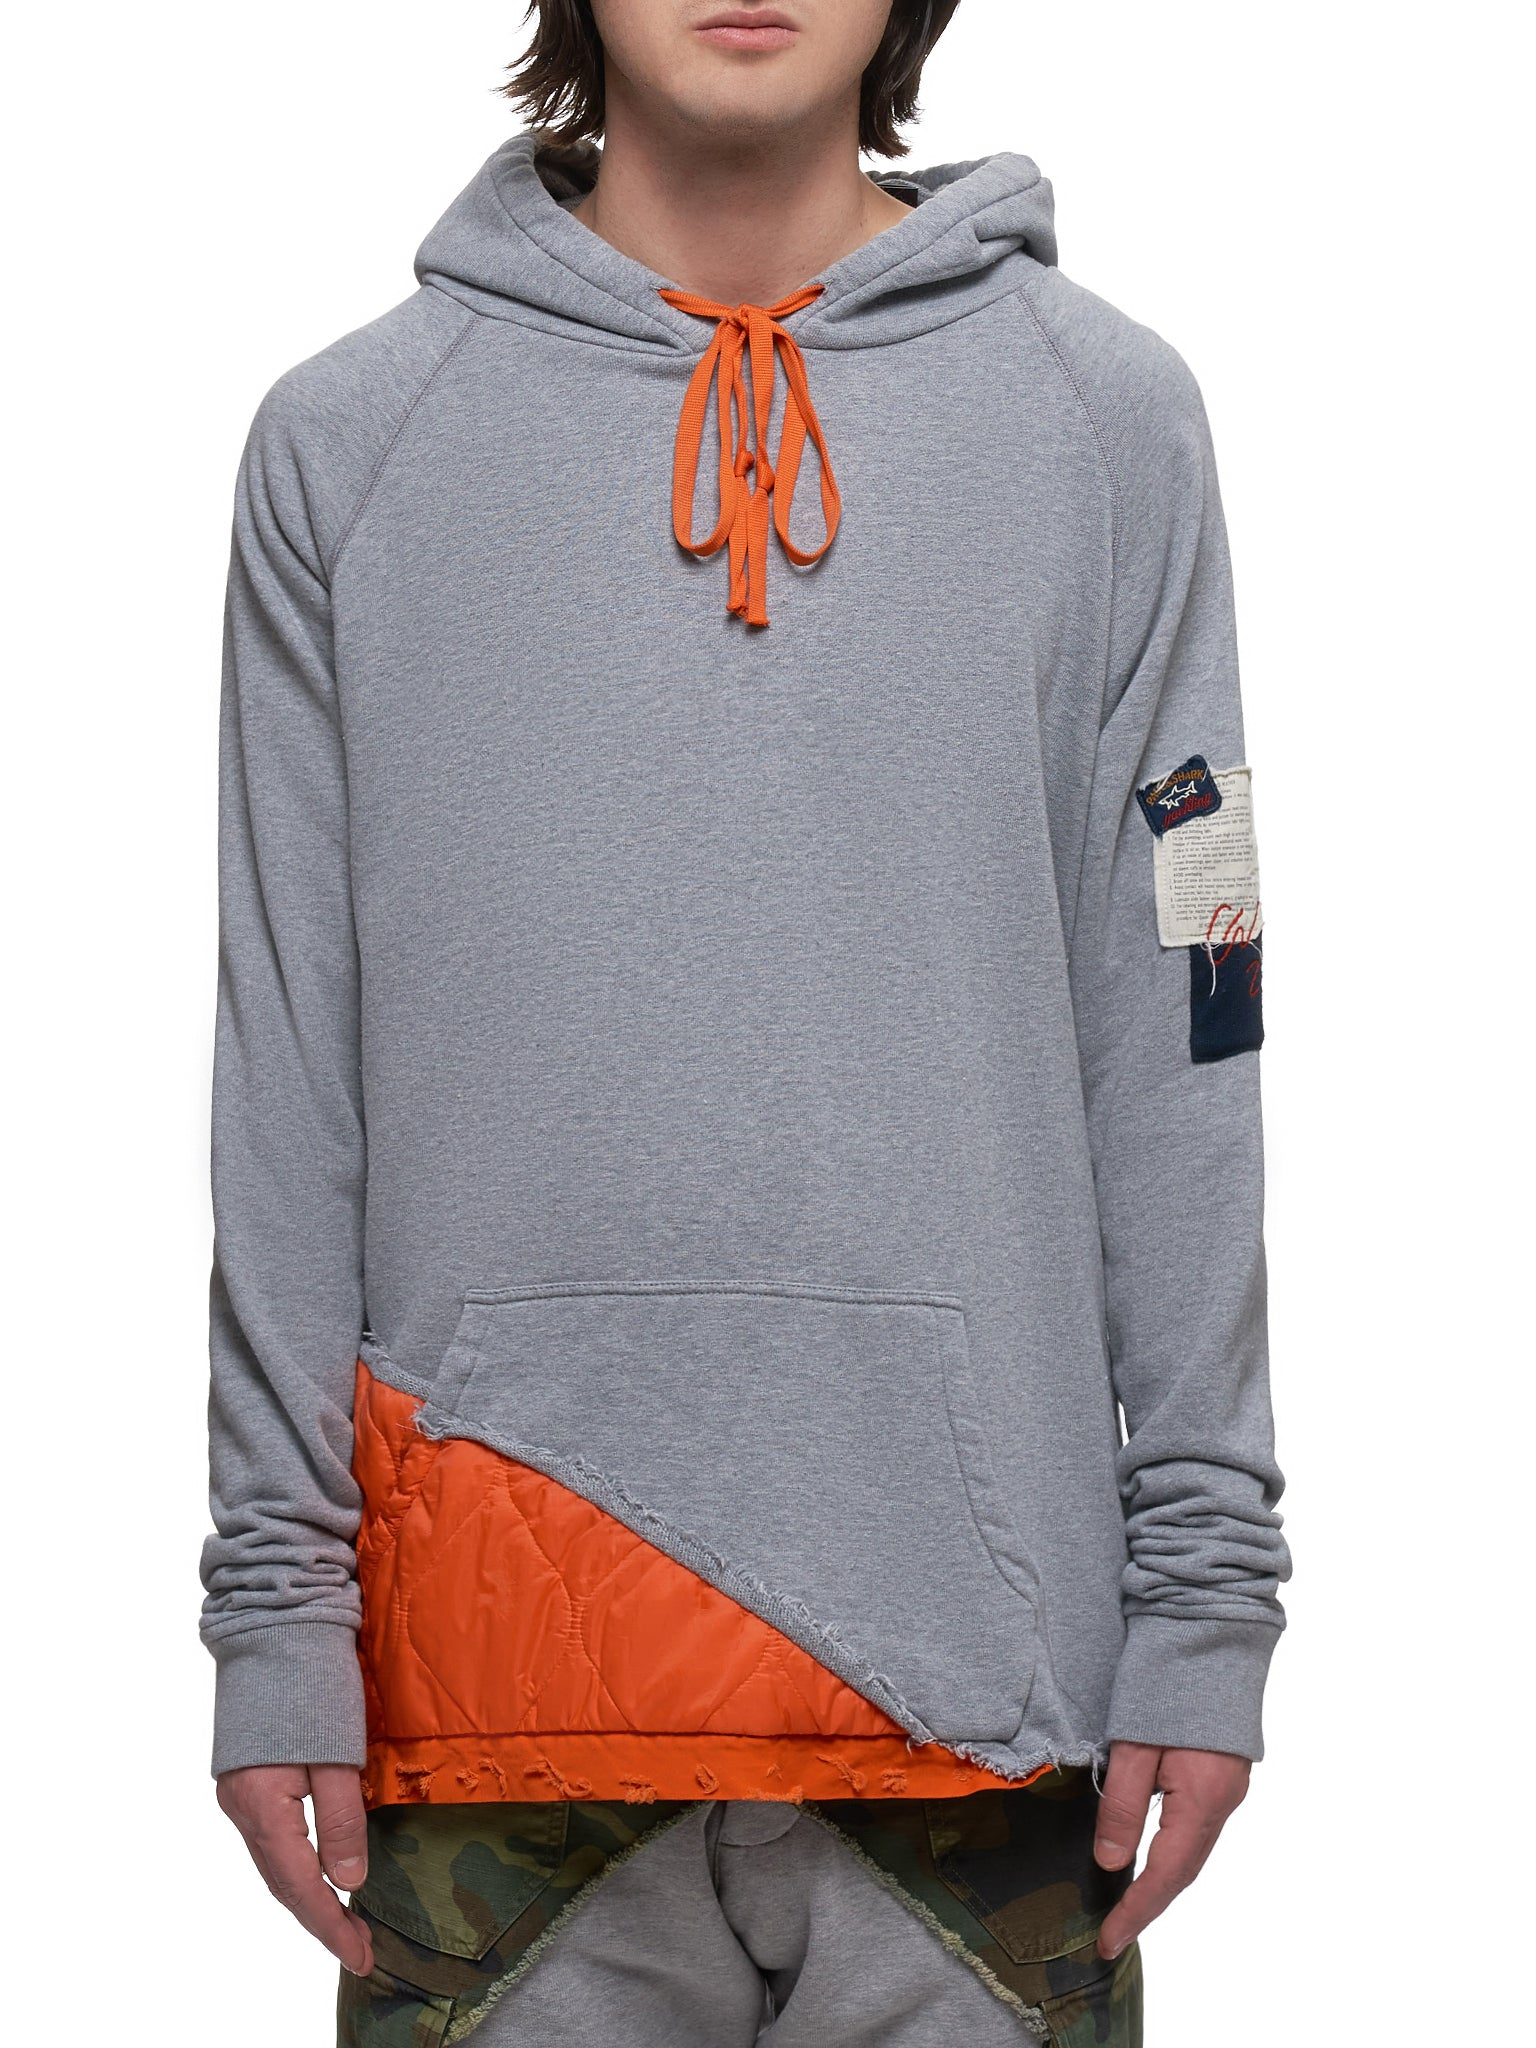 Paul & Shark by Greg Lauren Hoodie - Hlorenzo Front